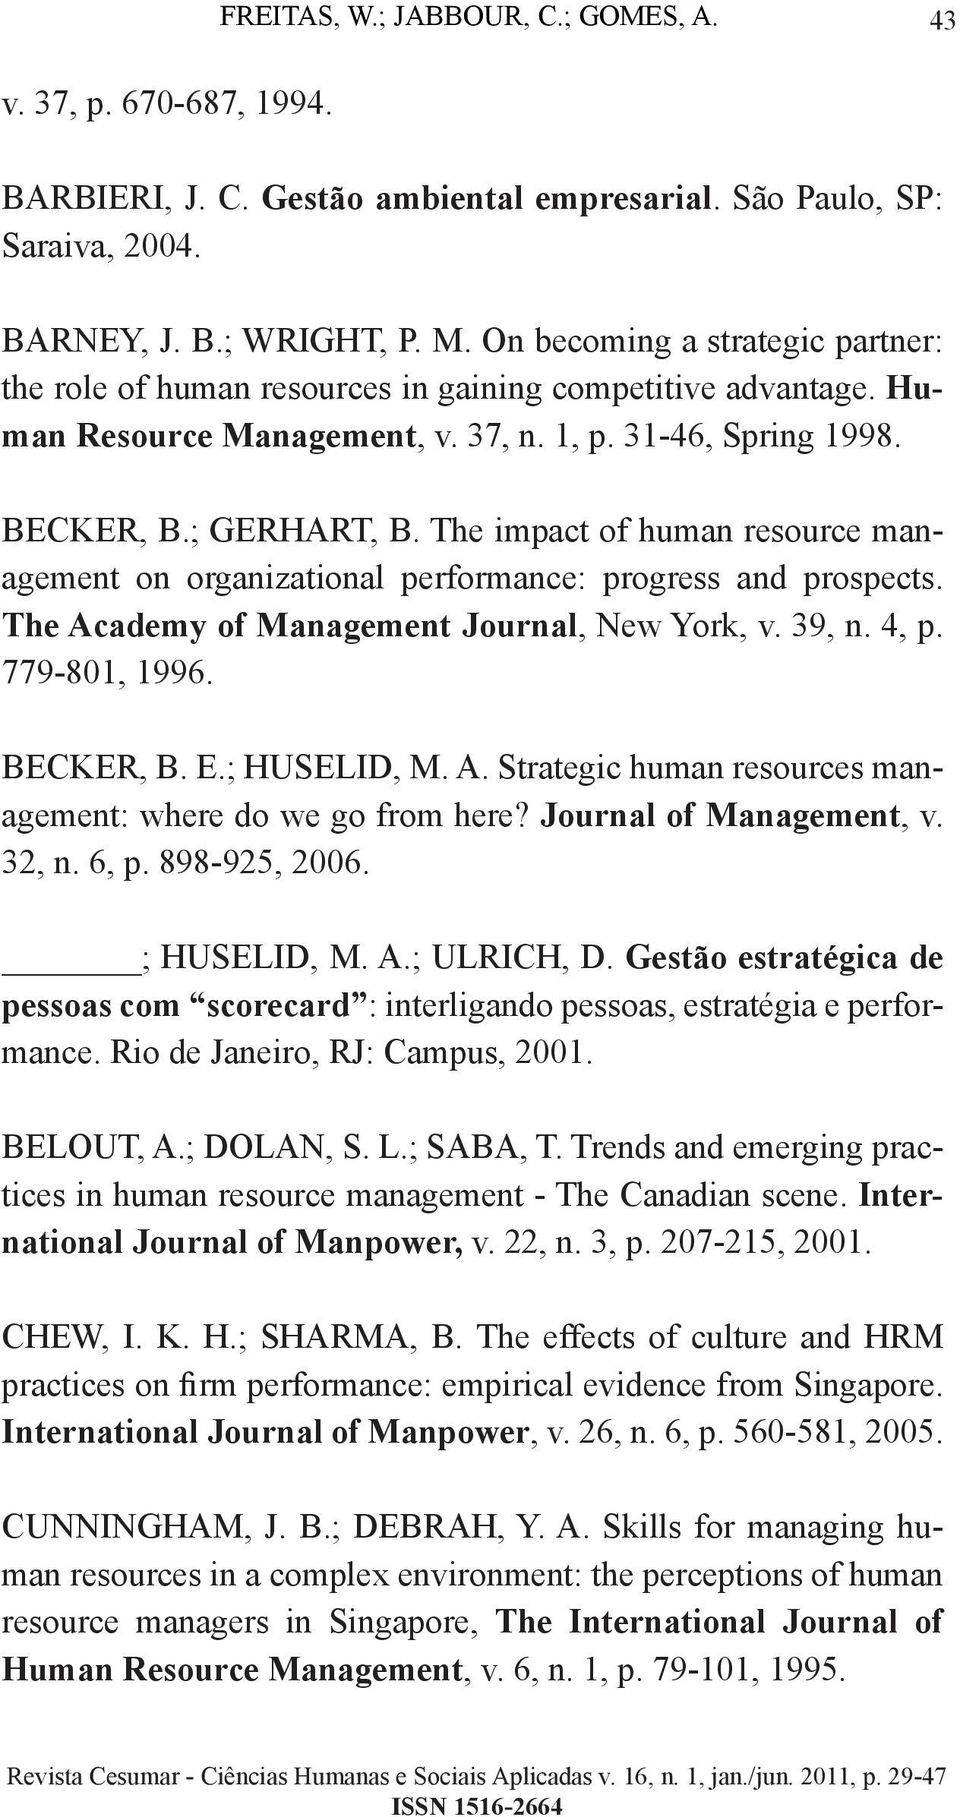 The impact of human resource management on organizational performance: progress and prospects. The Academy of Management Journal, New York, v. 39, n. 4, p. 779-801, 1996. BECKER, B. E.; HUSELID, M. A. Strategic human resources management: where do we go from here?